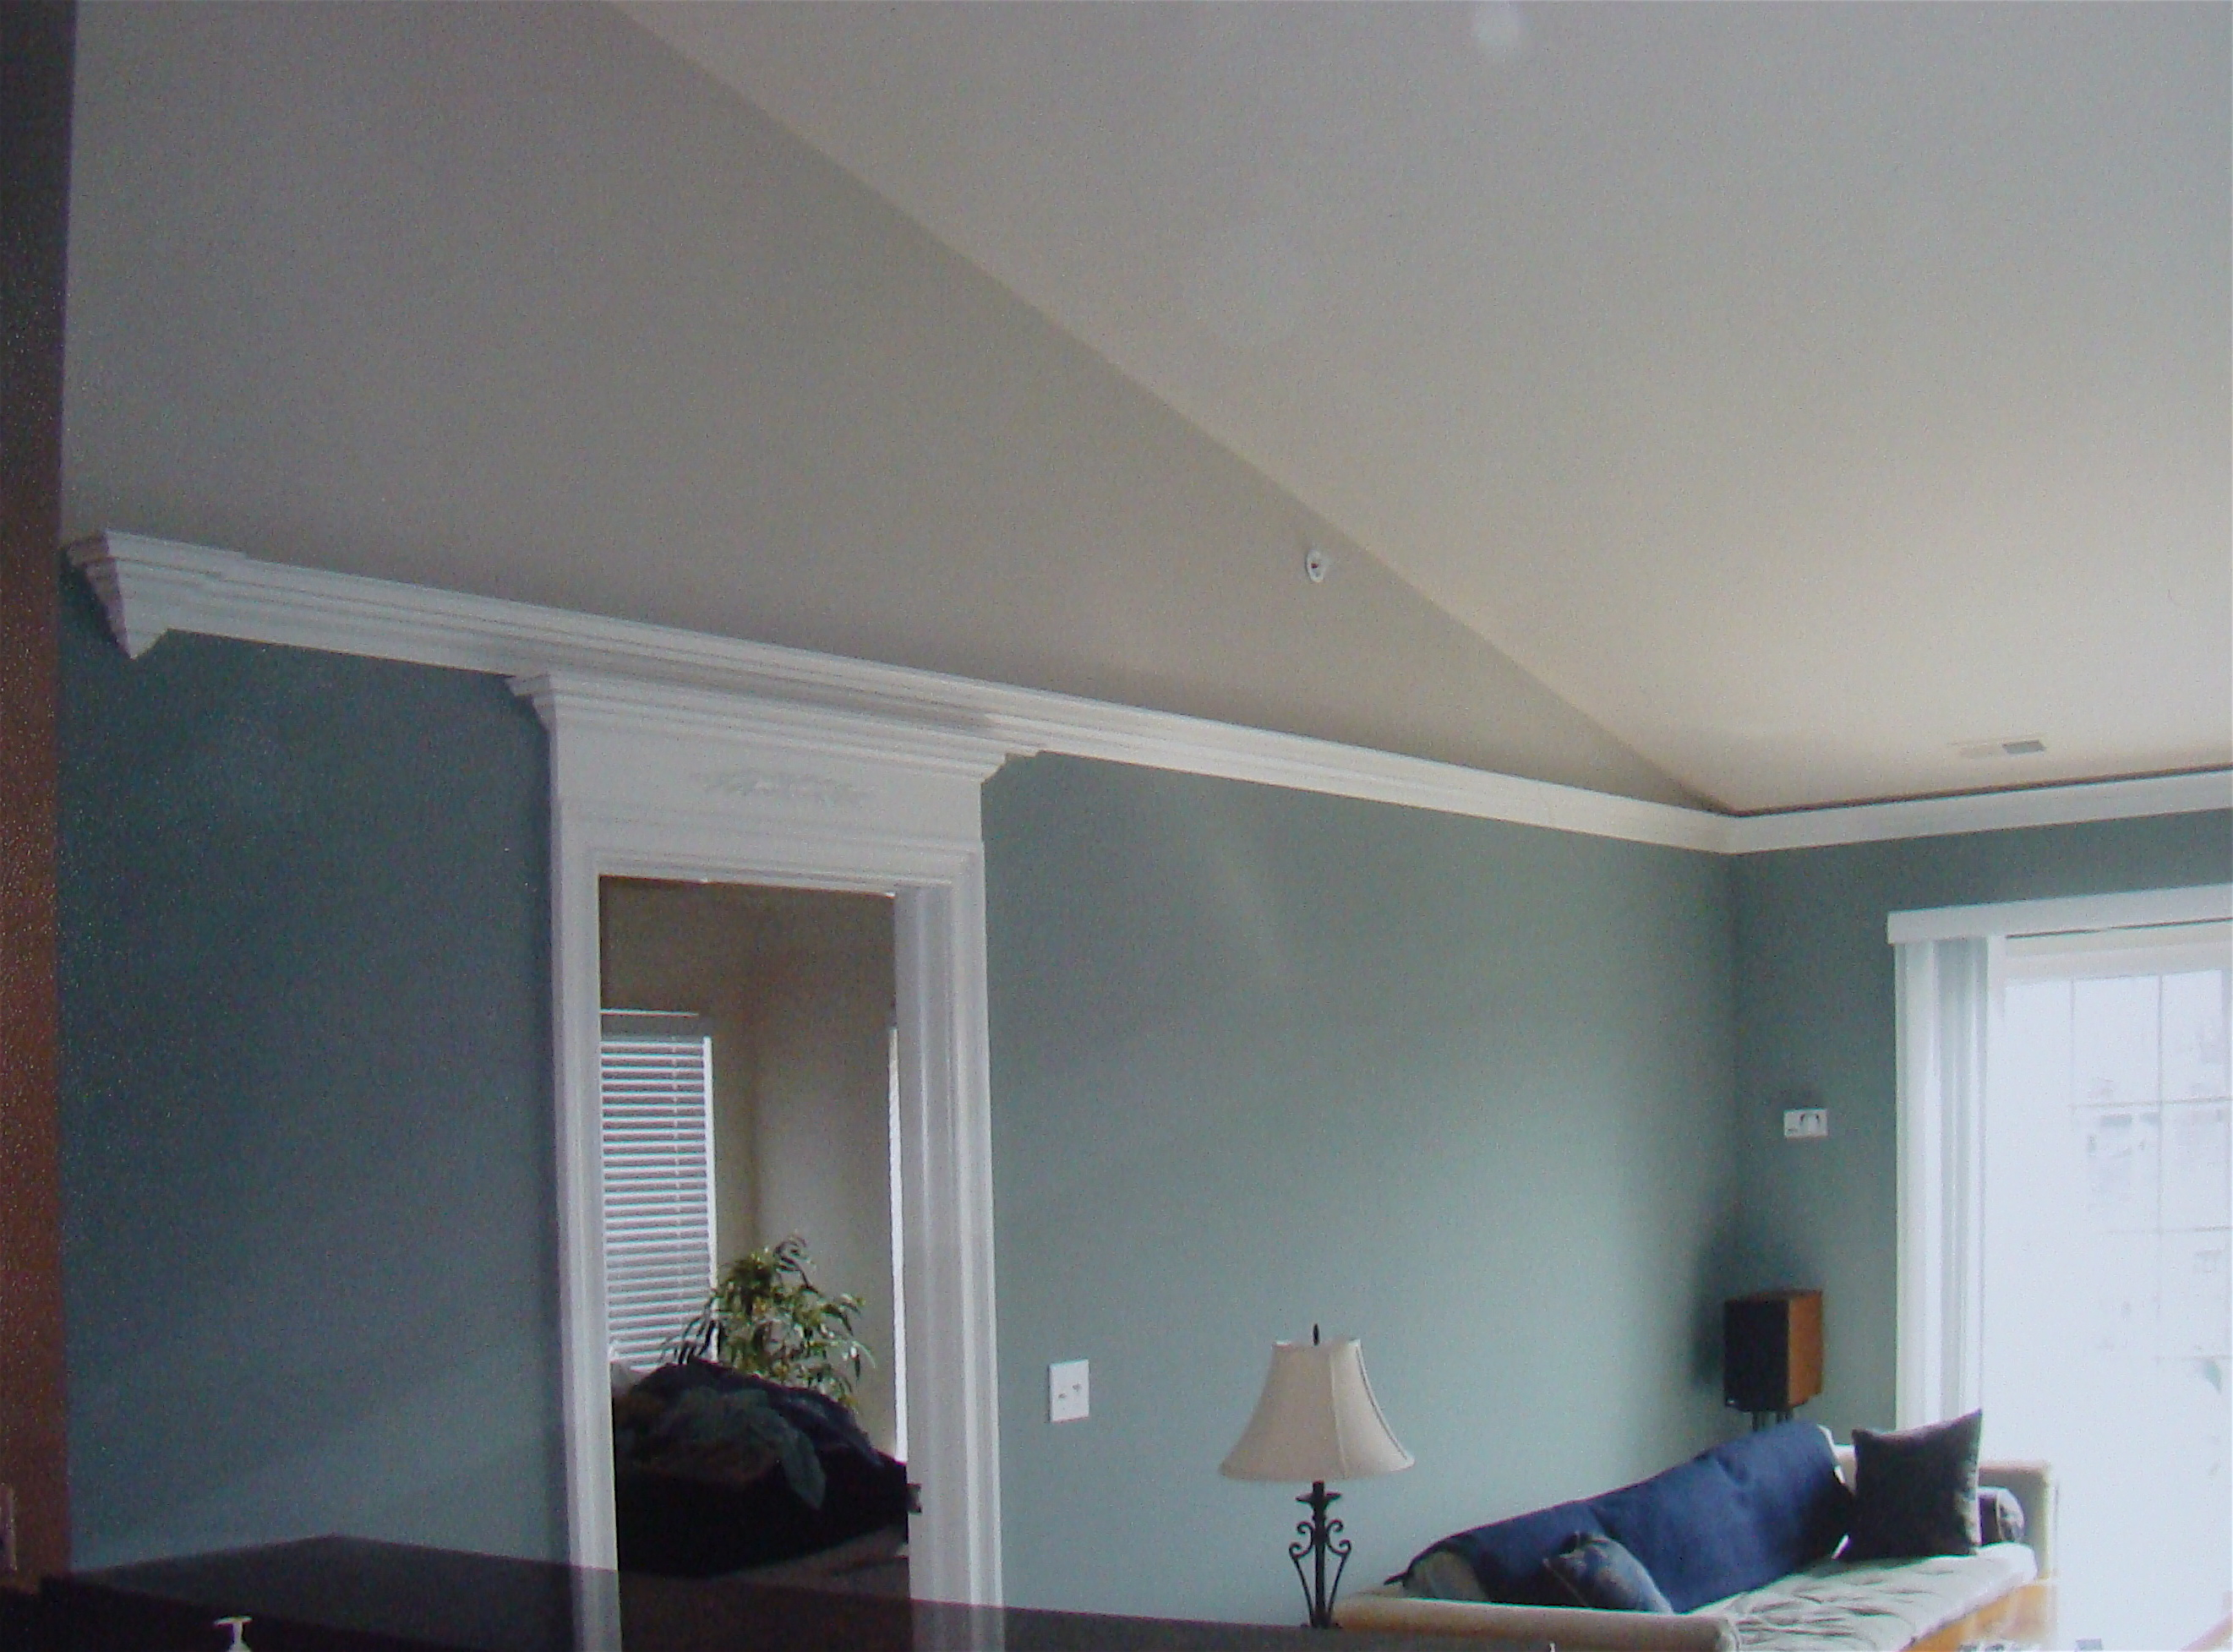 Finial return on flying crown vaulted ceiling condo the for How to paint a vaulted ceiling room